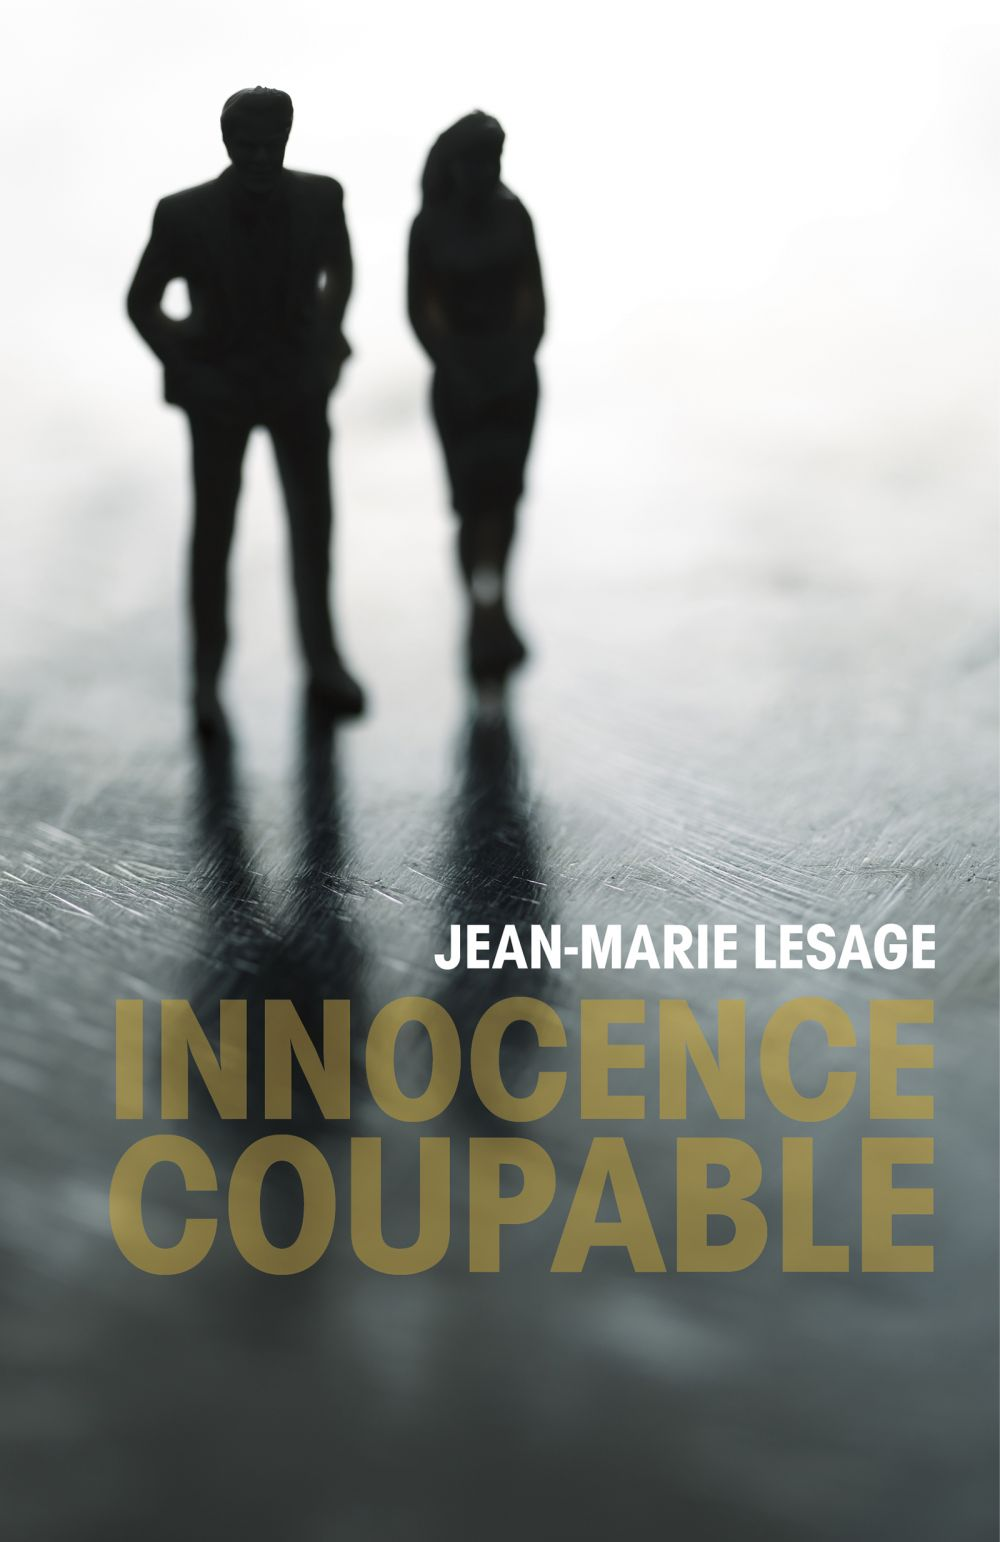 Innocence coupable